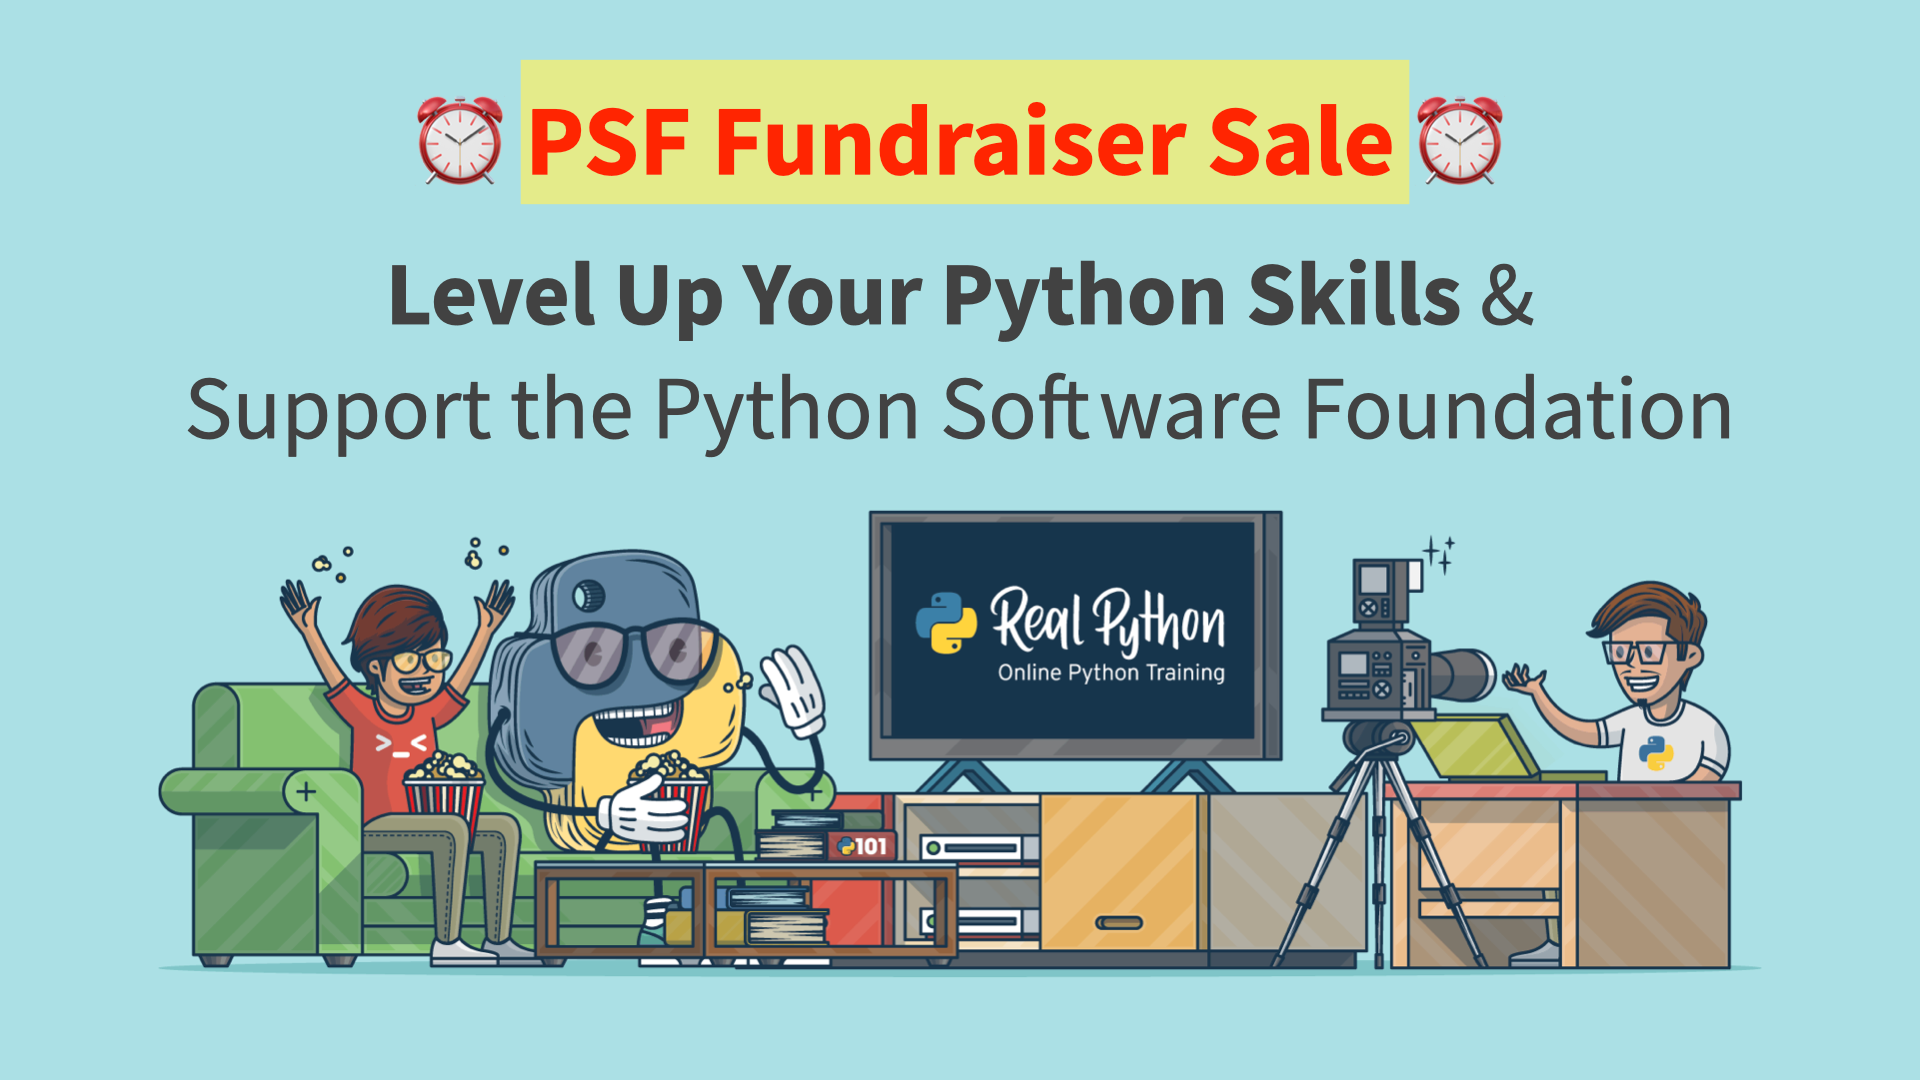 Real Python + PSF Fundraiser Sale